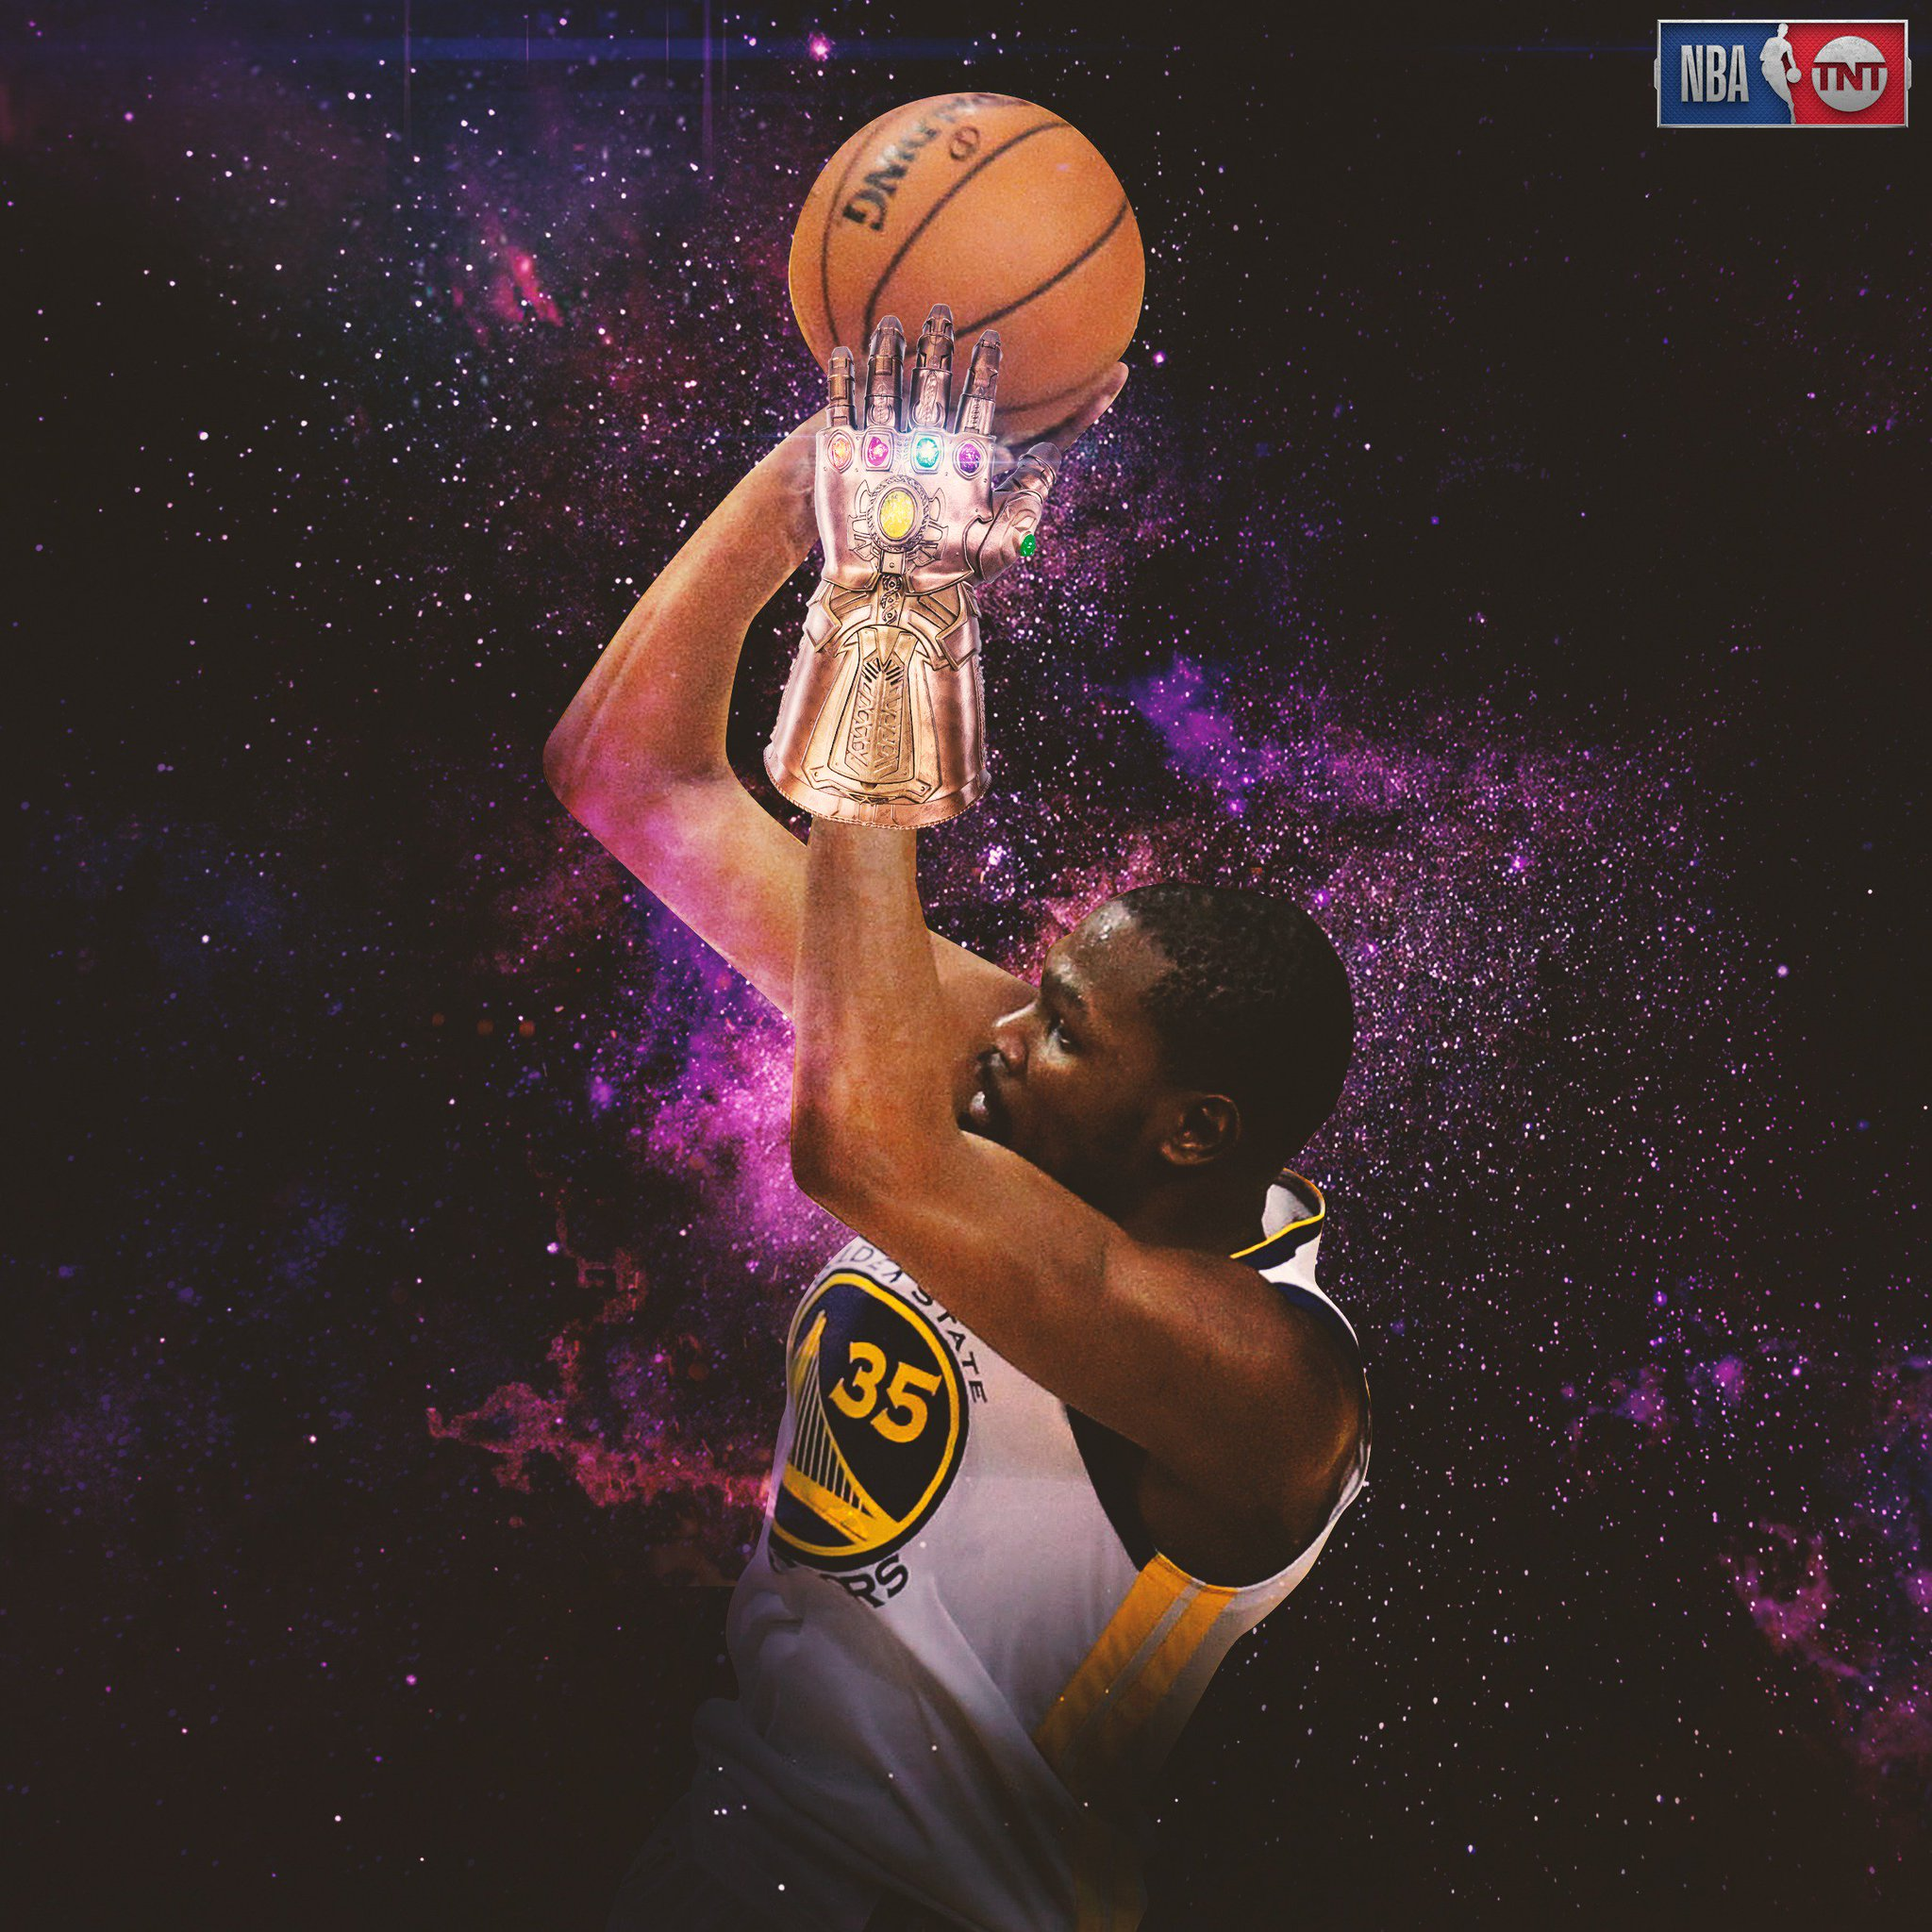 KD was unstoppable tonight. ��  #NBAPlayoffs https://t.co/sXv6GW1qxt